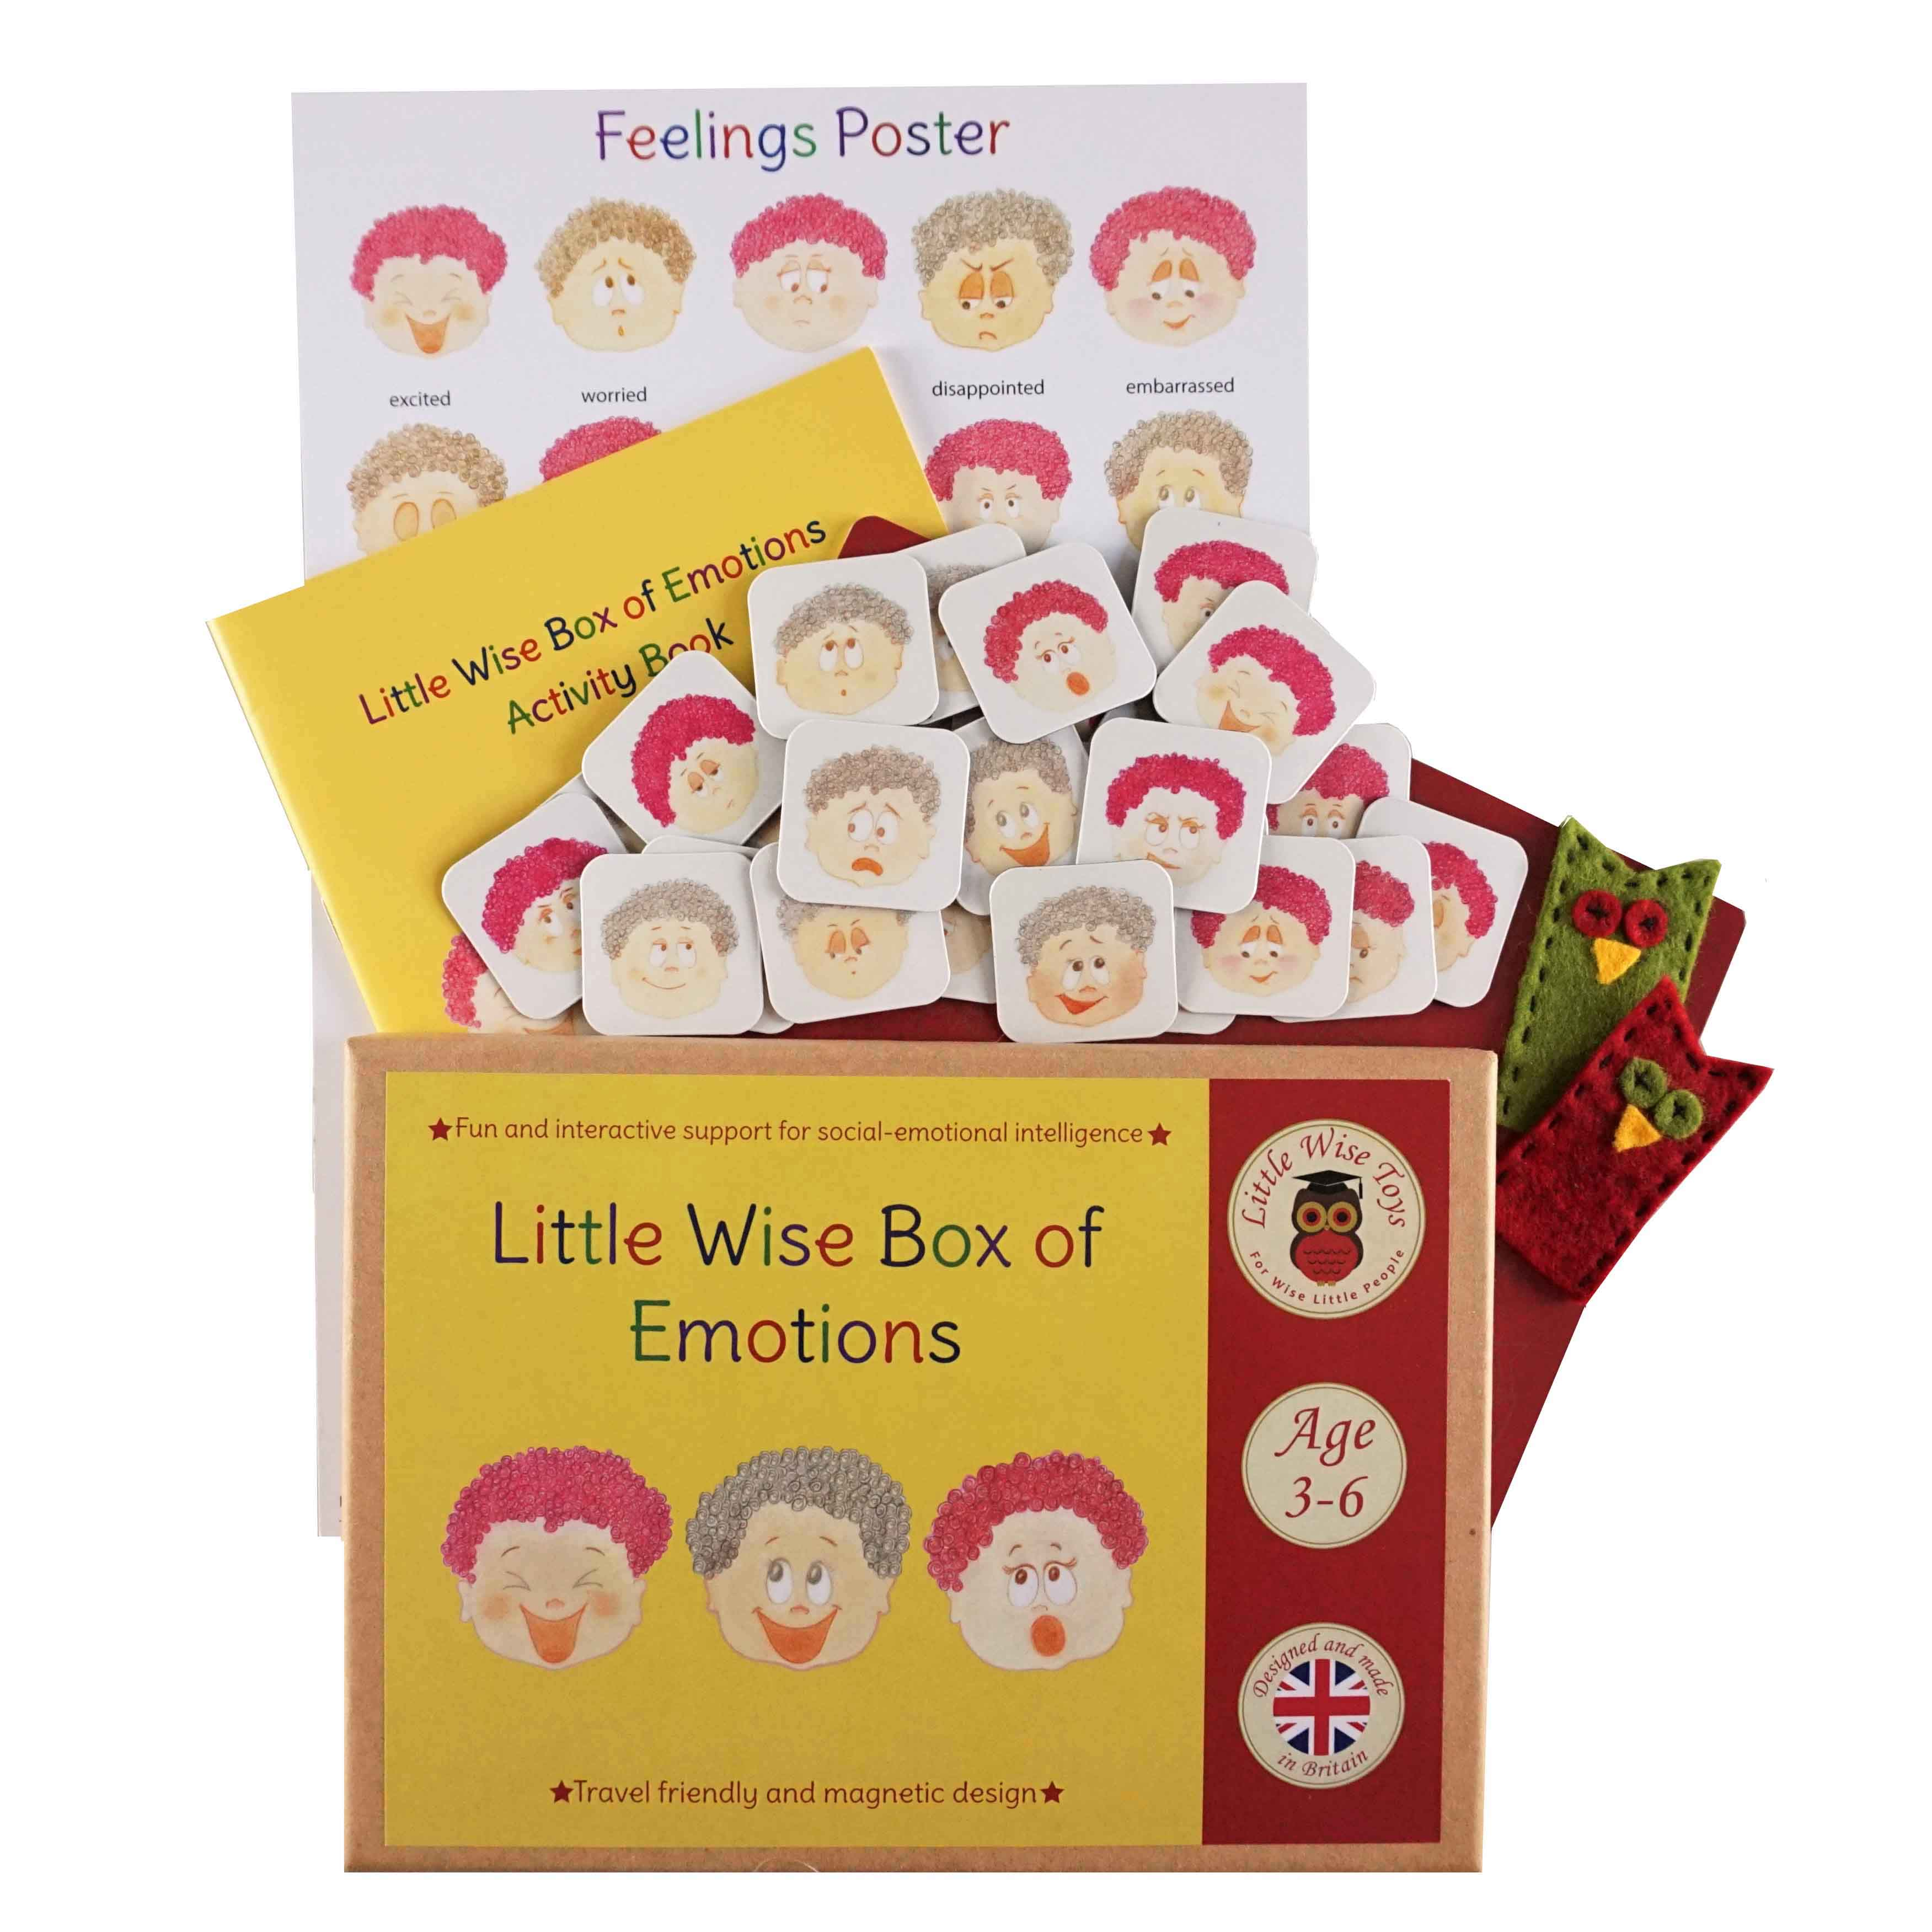 Helping children to understand and manage big emotions and feelings. Emotions - early years educational and learning toy. Helping 3-6 year olds to understand and manage their emotions and feelings.